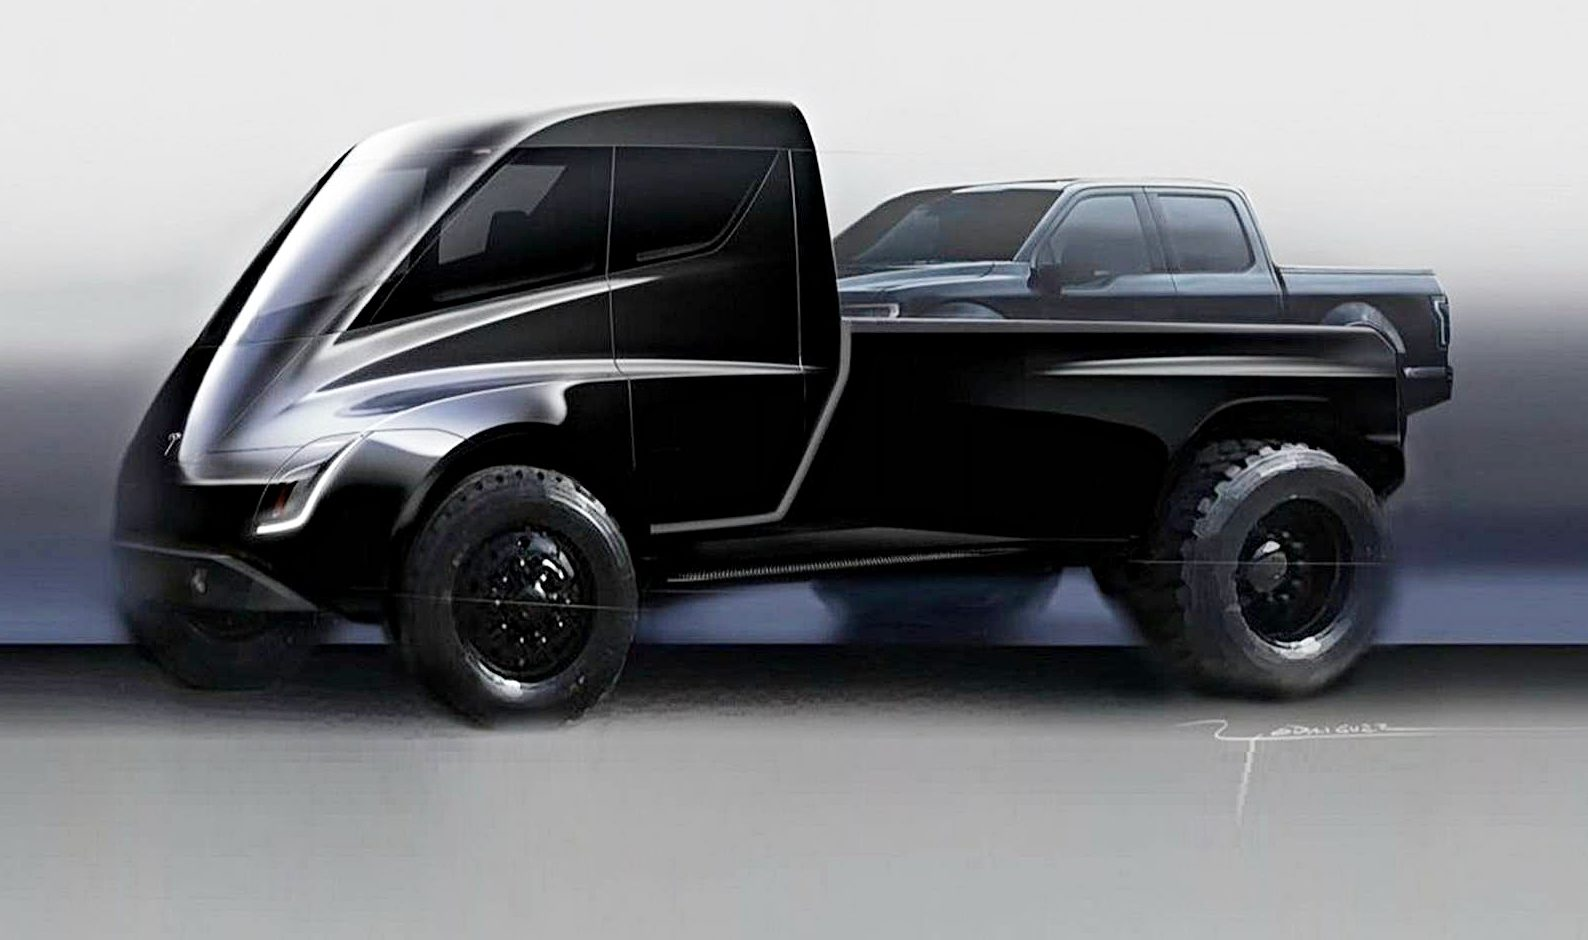 Vehicles With 5000 Lb Towing Capacity >> Tesla Pickup Truck S 300k Lb Towing Capacity Is Crazy But Feasible